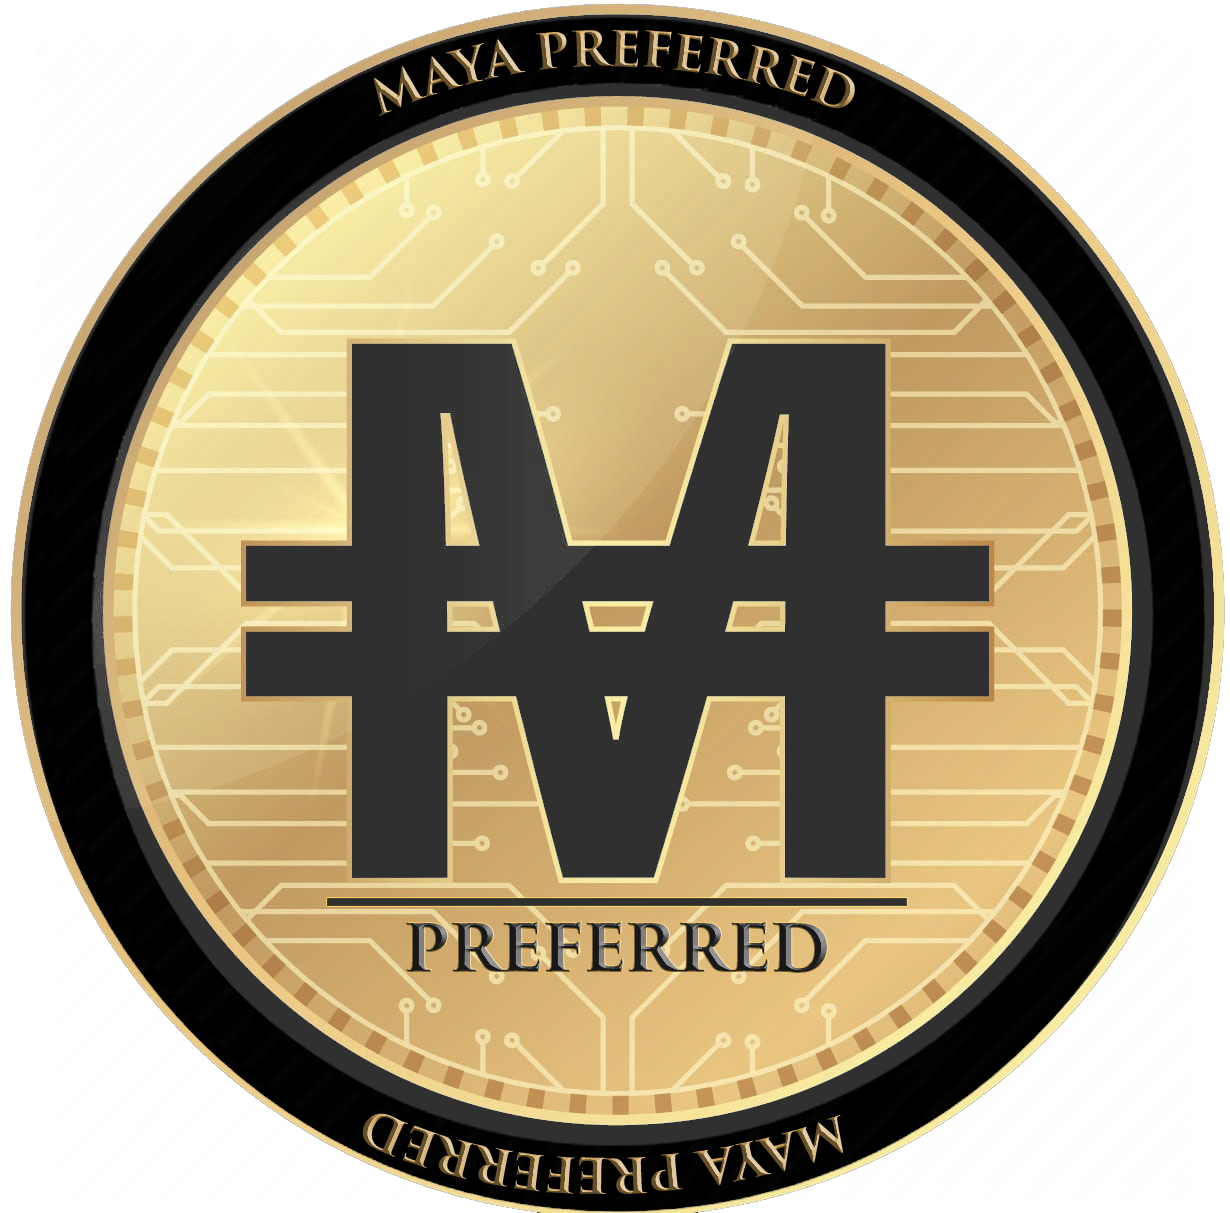 Maya Preferred 223 listed on CoinMarketCap